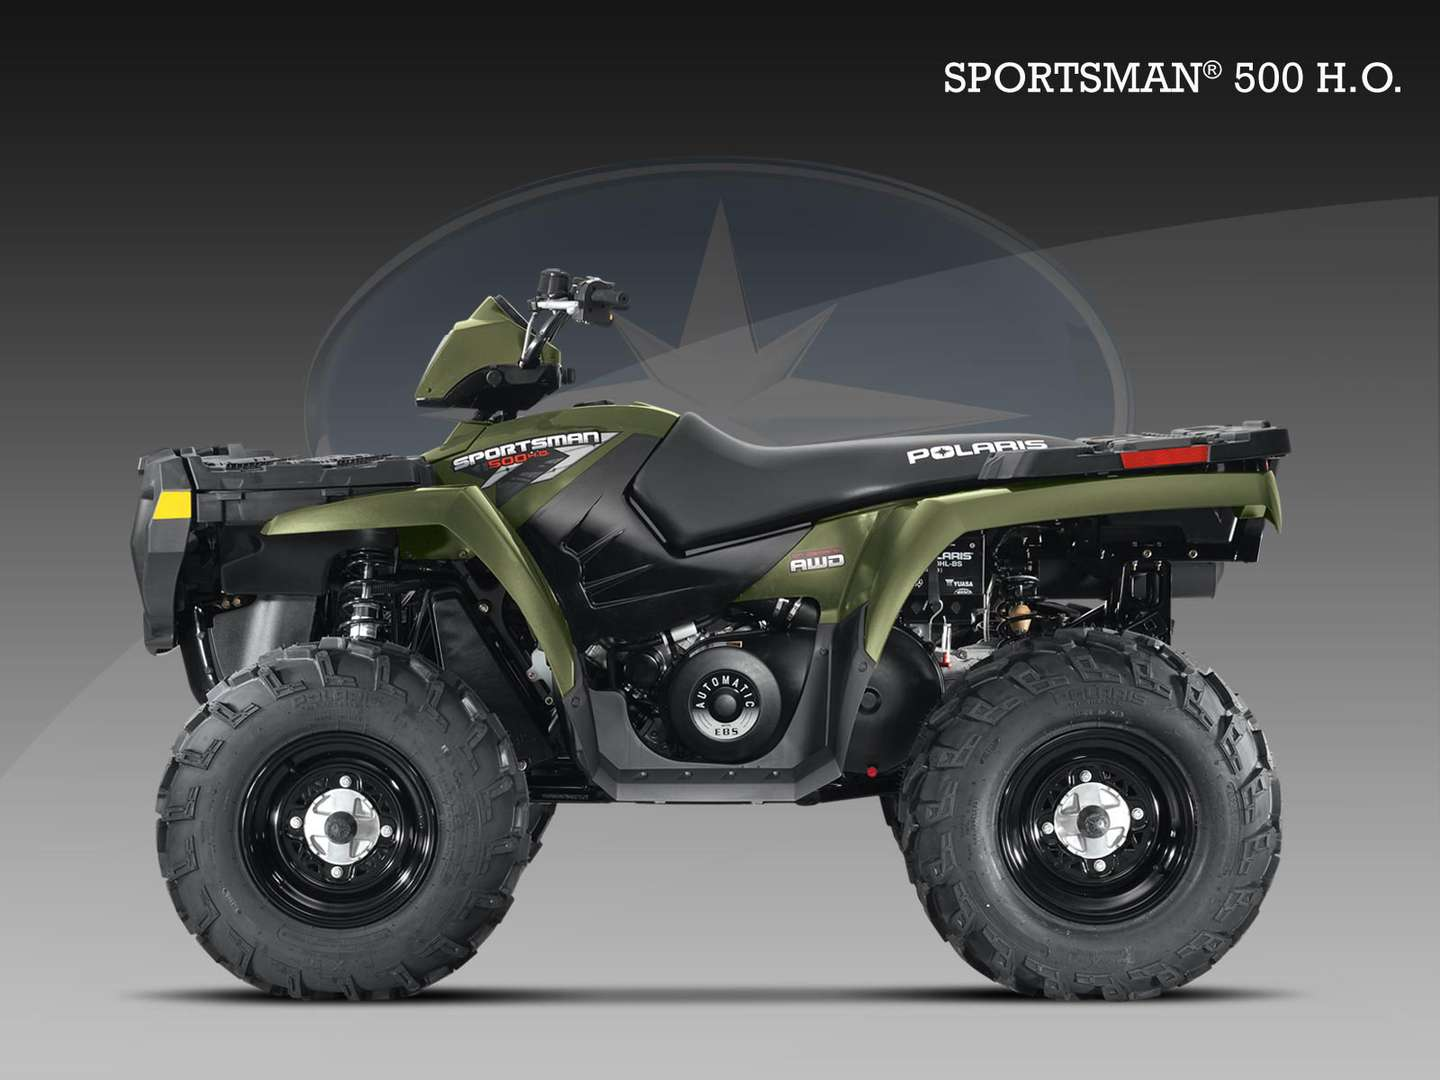 Polaris_Sportsman_500